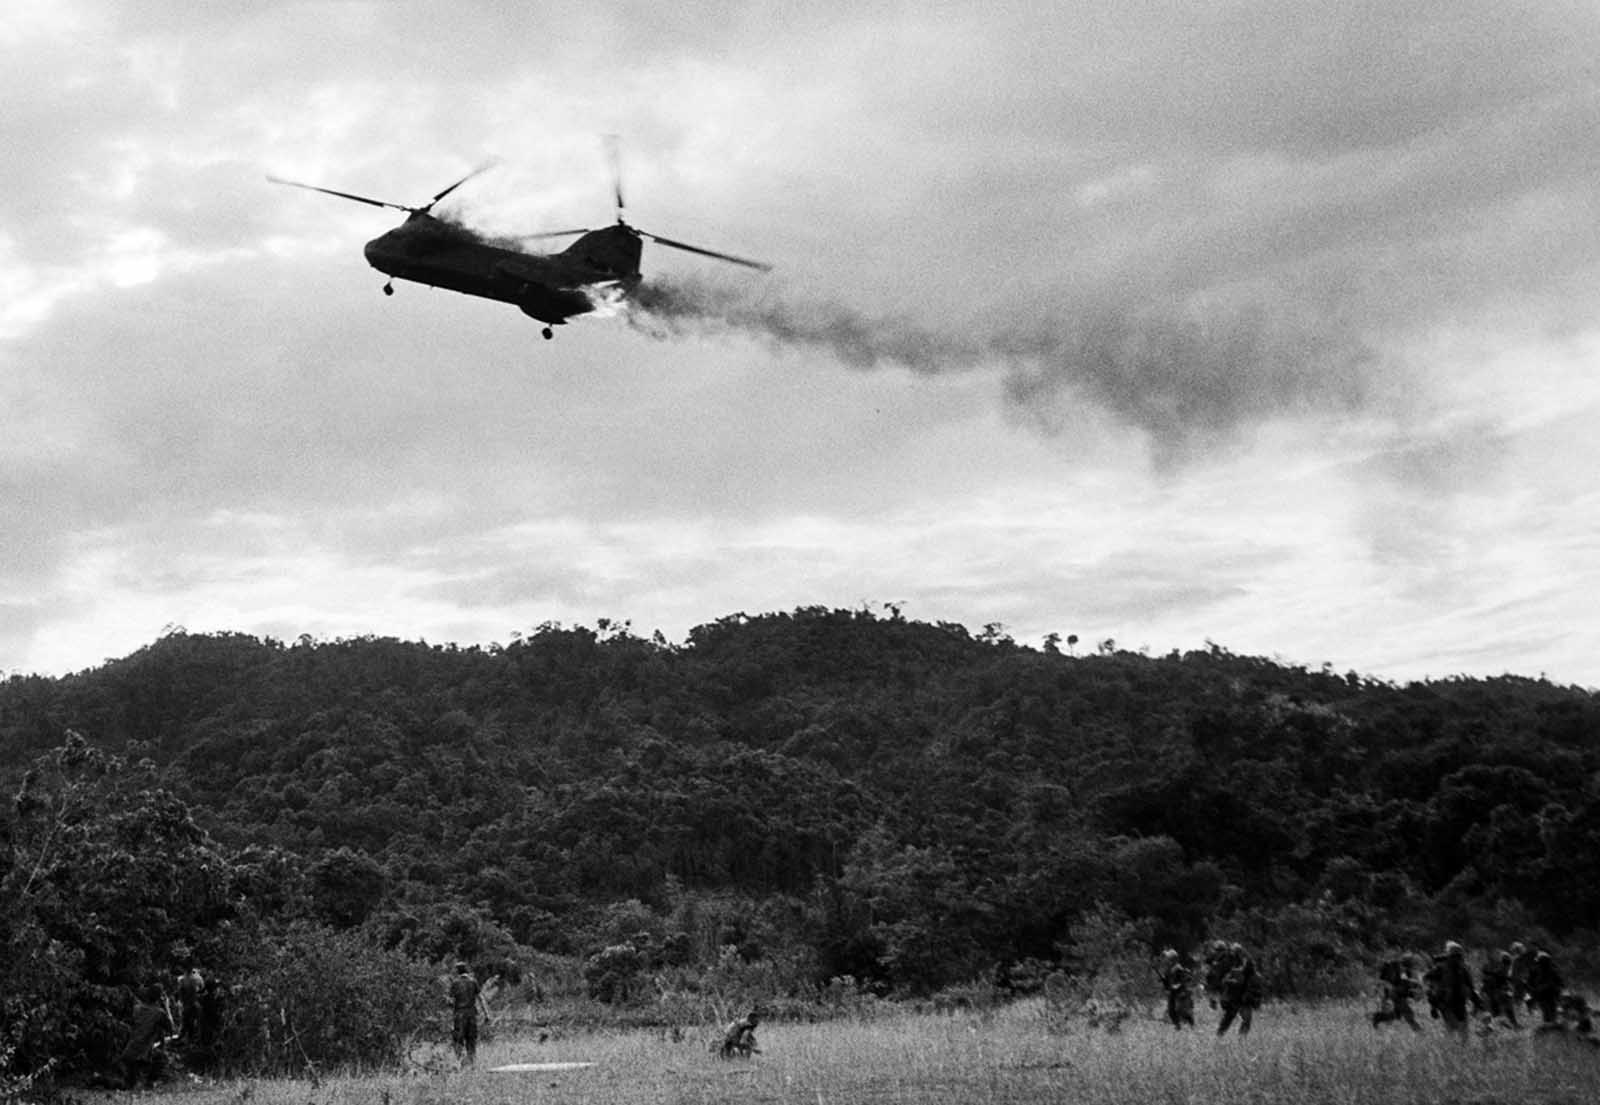 A U.S. Marine CH-46 Sea Knight helicopter comes down in flames after being hit by enemy ground fire during Operation Hastings, just south of the demilitarized zone between North and South Vietnam, on July 15, 1966. The helicopter crashed and exploded on a hill, killing one crewman and 12 Marines. Three crewmen escaped with serious burns.